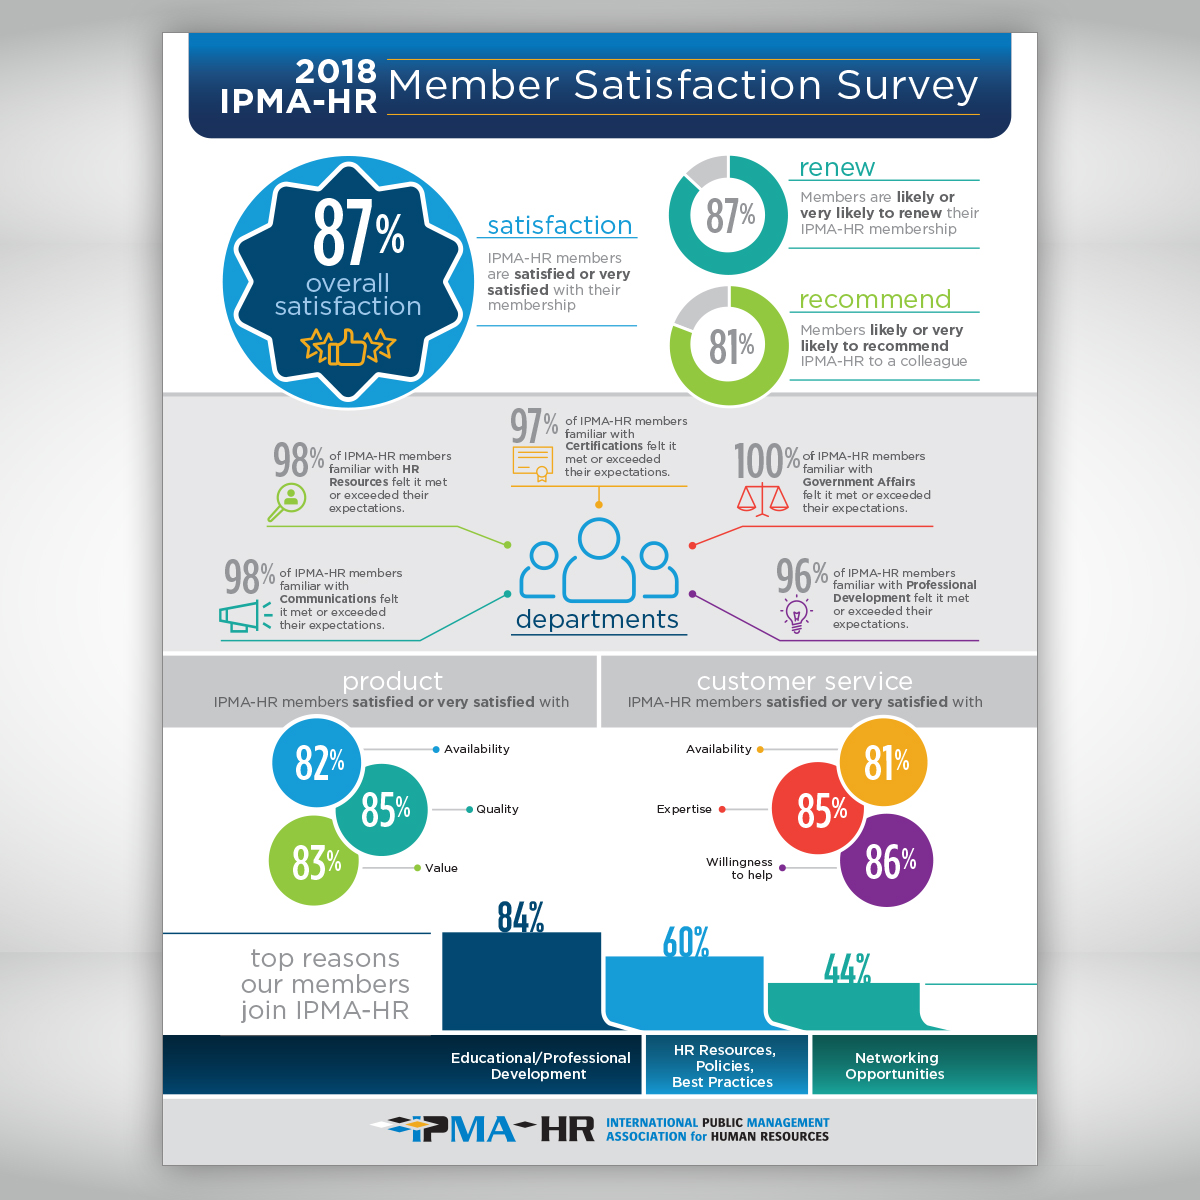 2018 IPMA-HR Member Satisfaction Survey